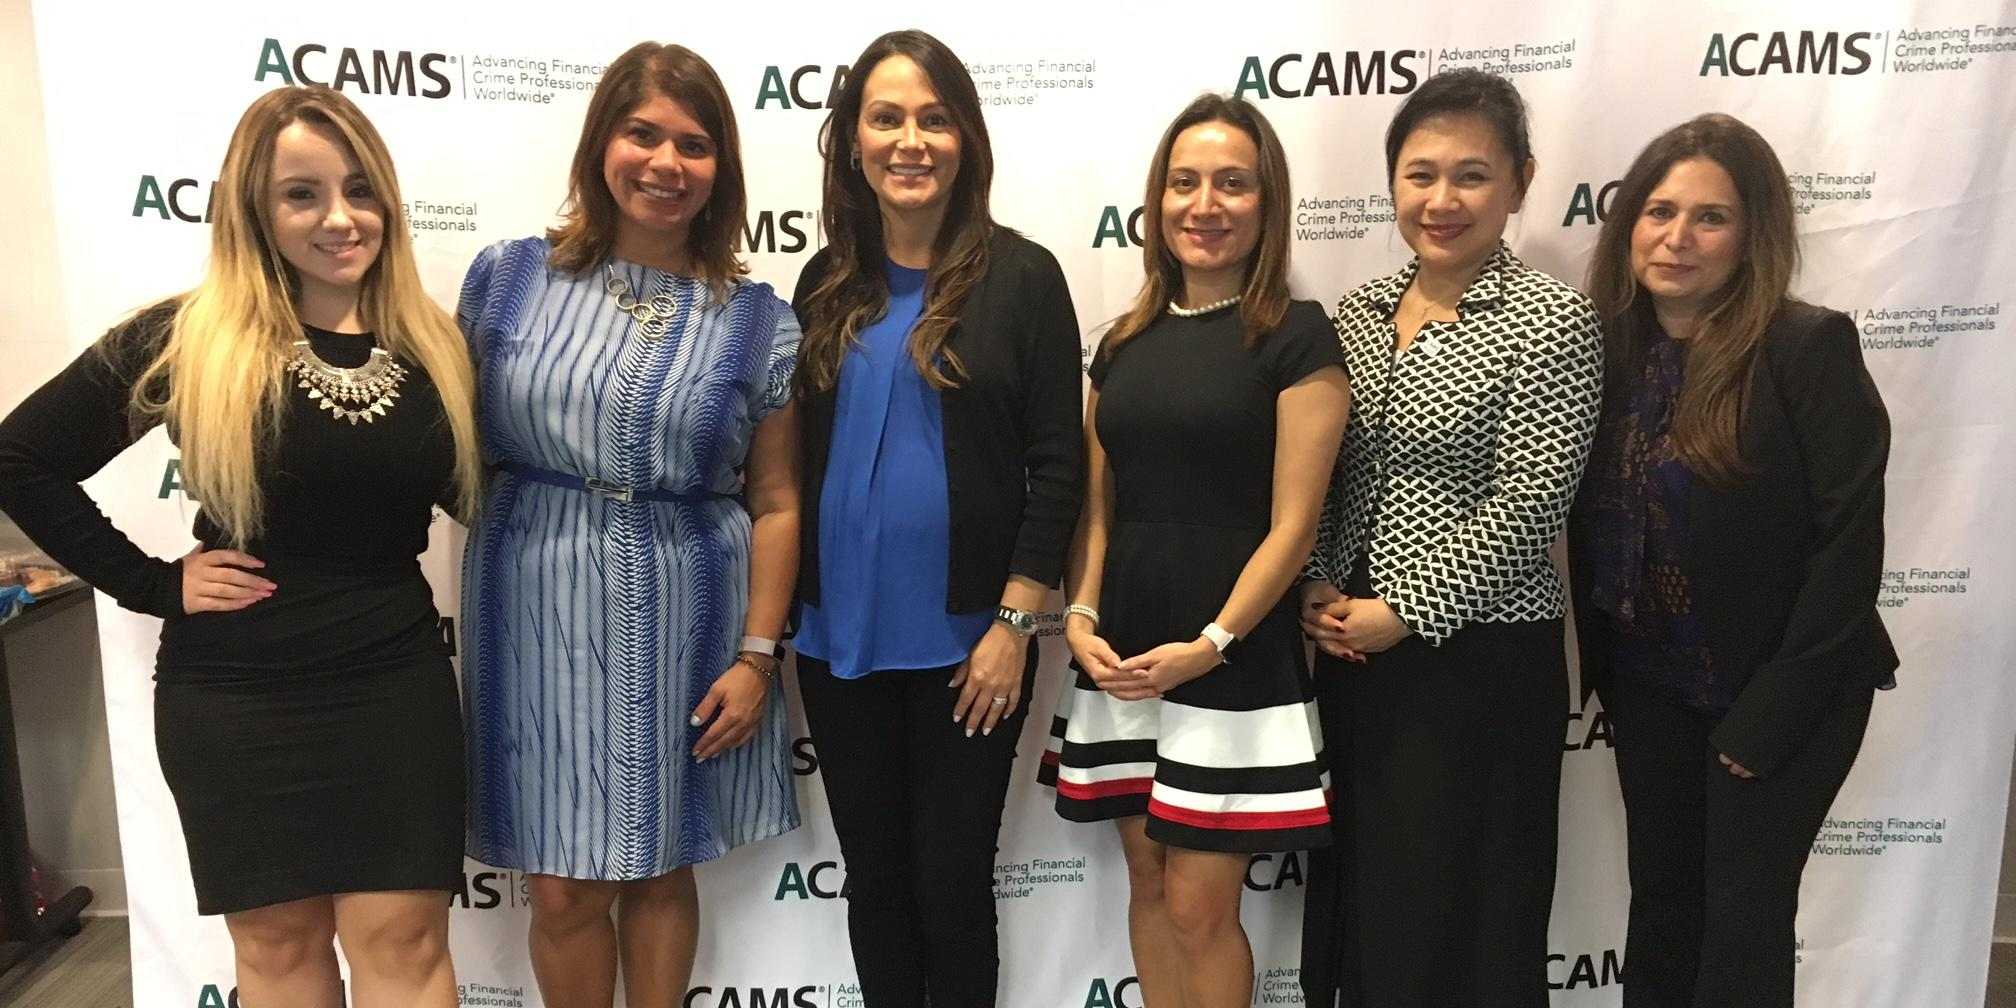 ACAMS staff who work with Kristi House